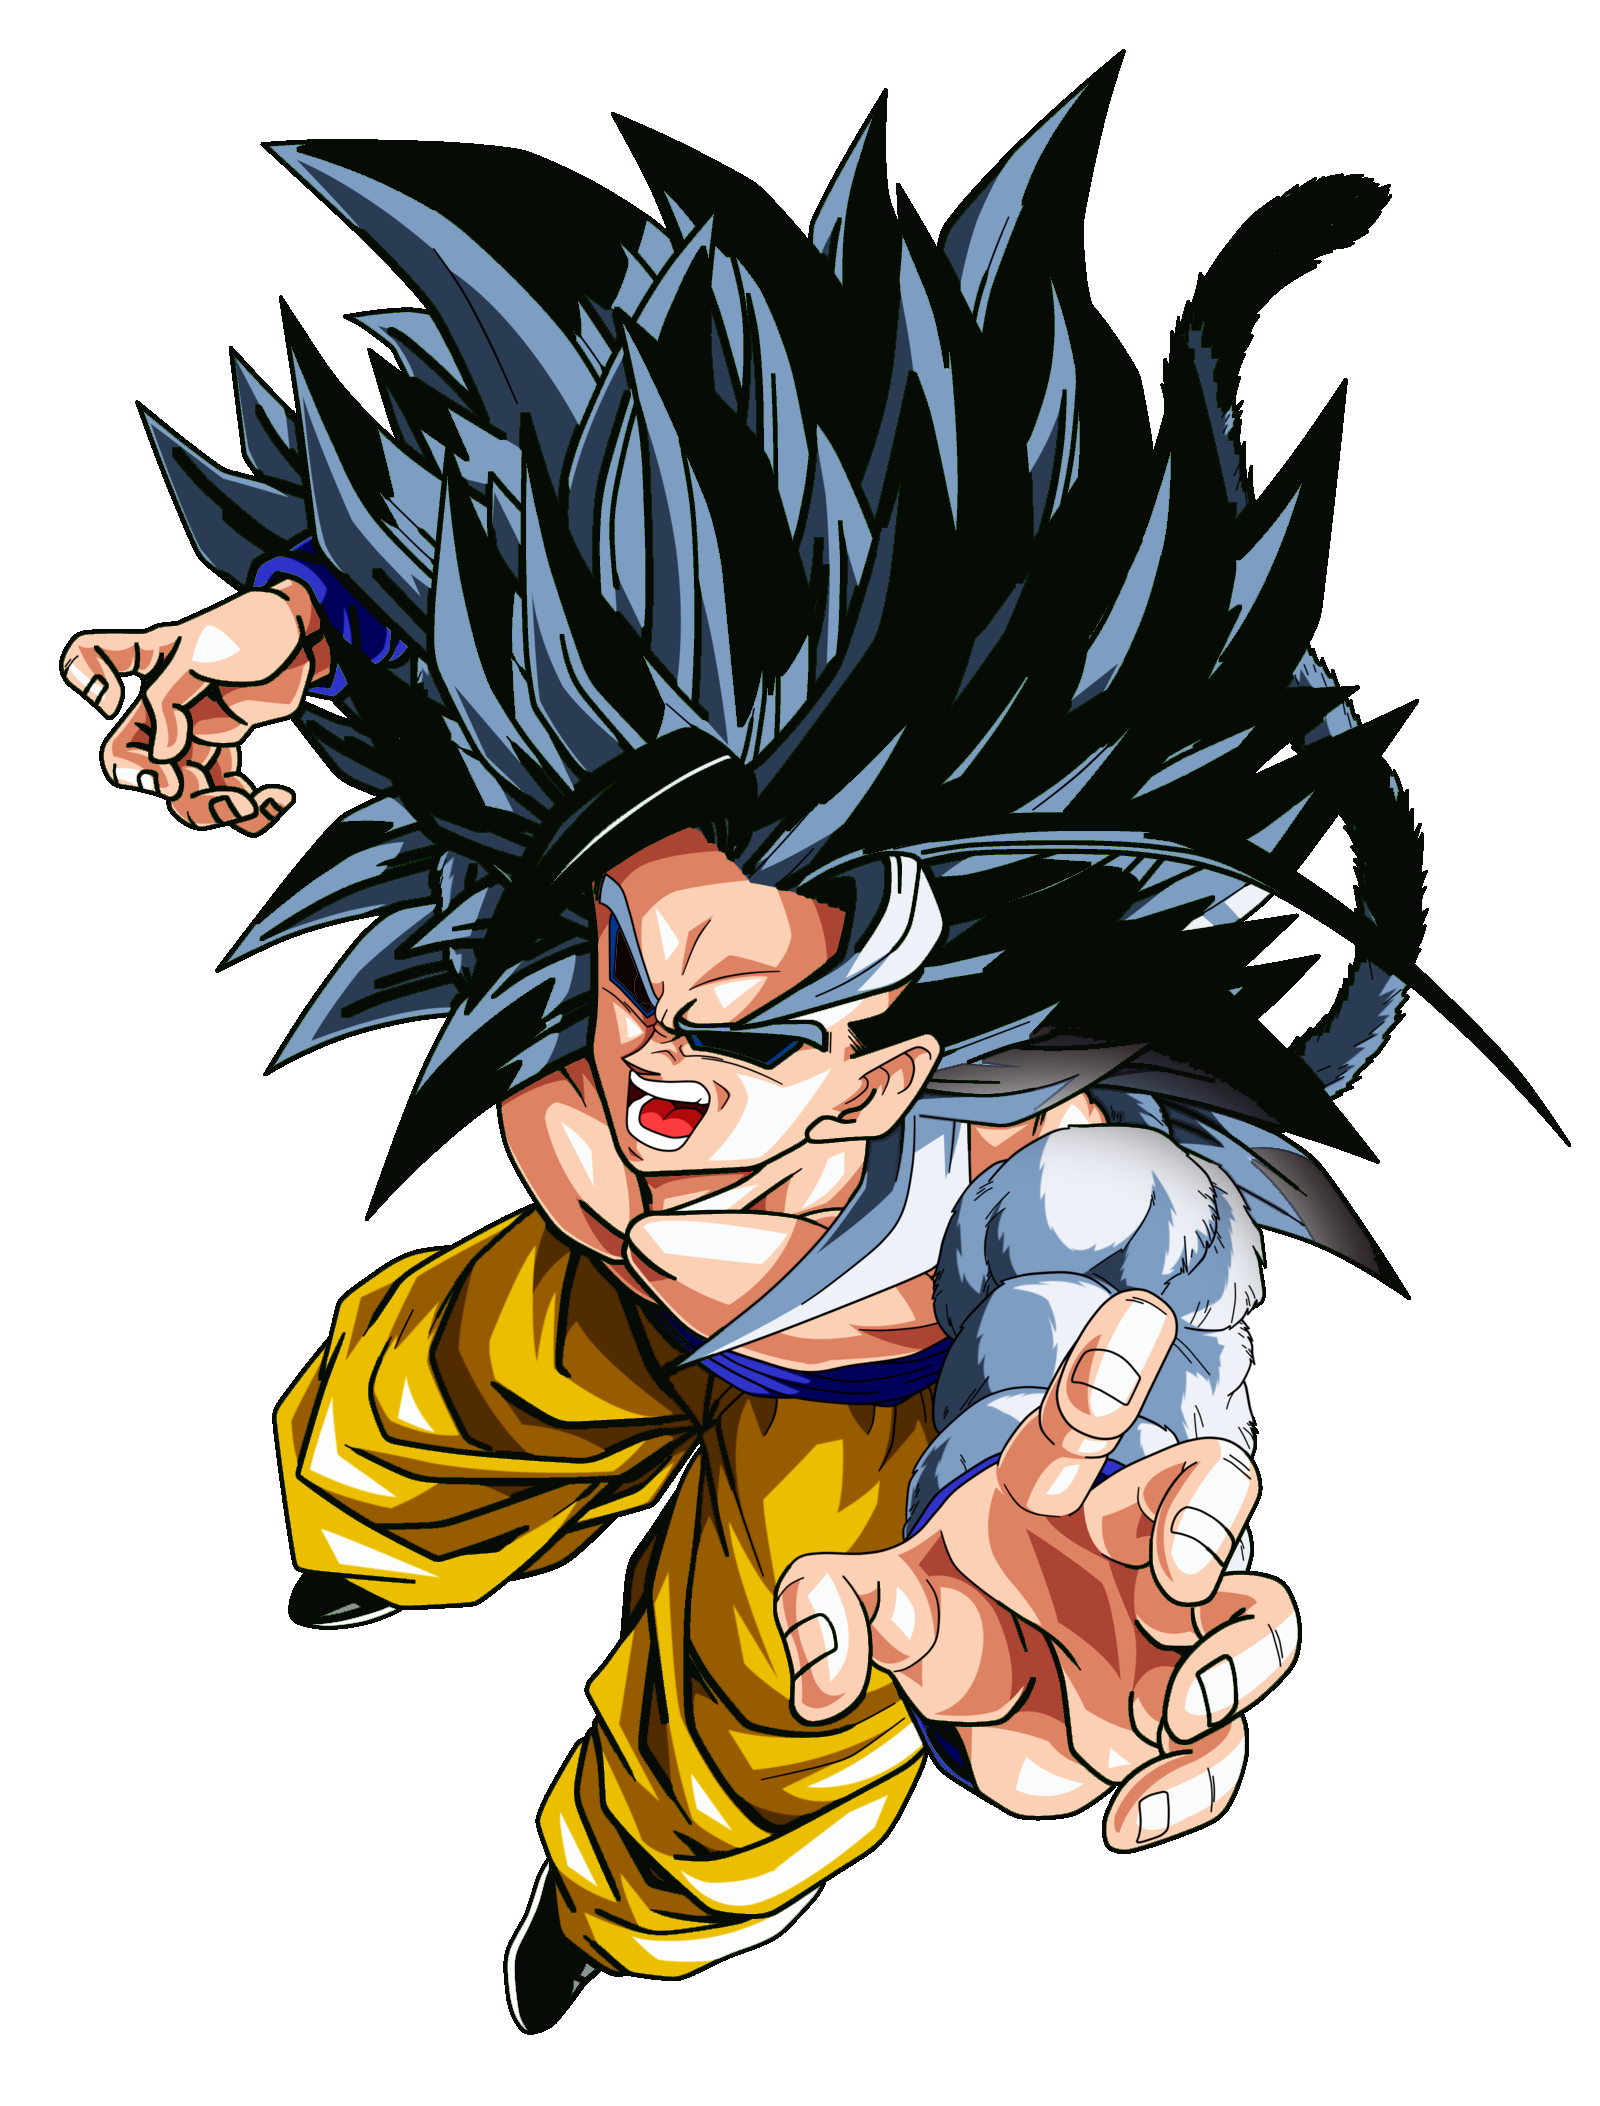 Dragon Ball Z Goku Ssj 5 Dragon Ball Goku Goku Super Saiyan